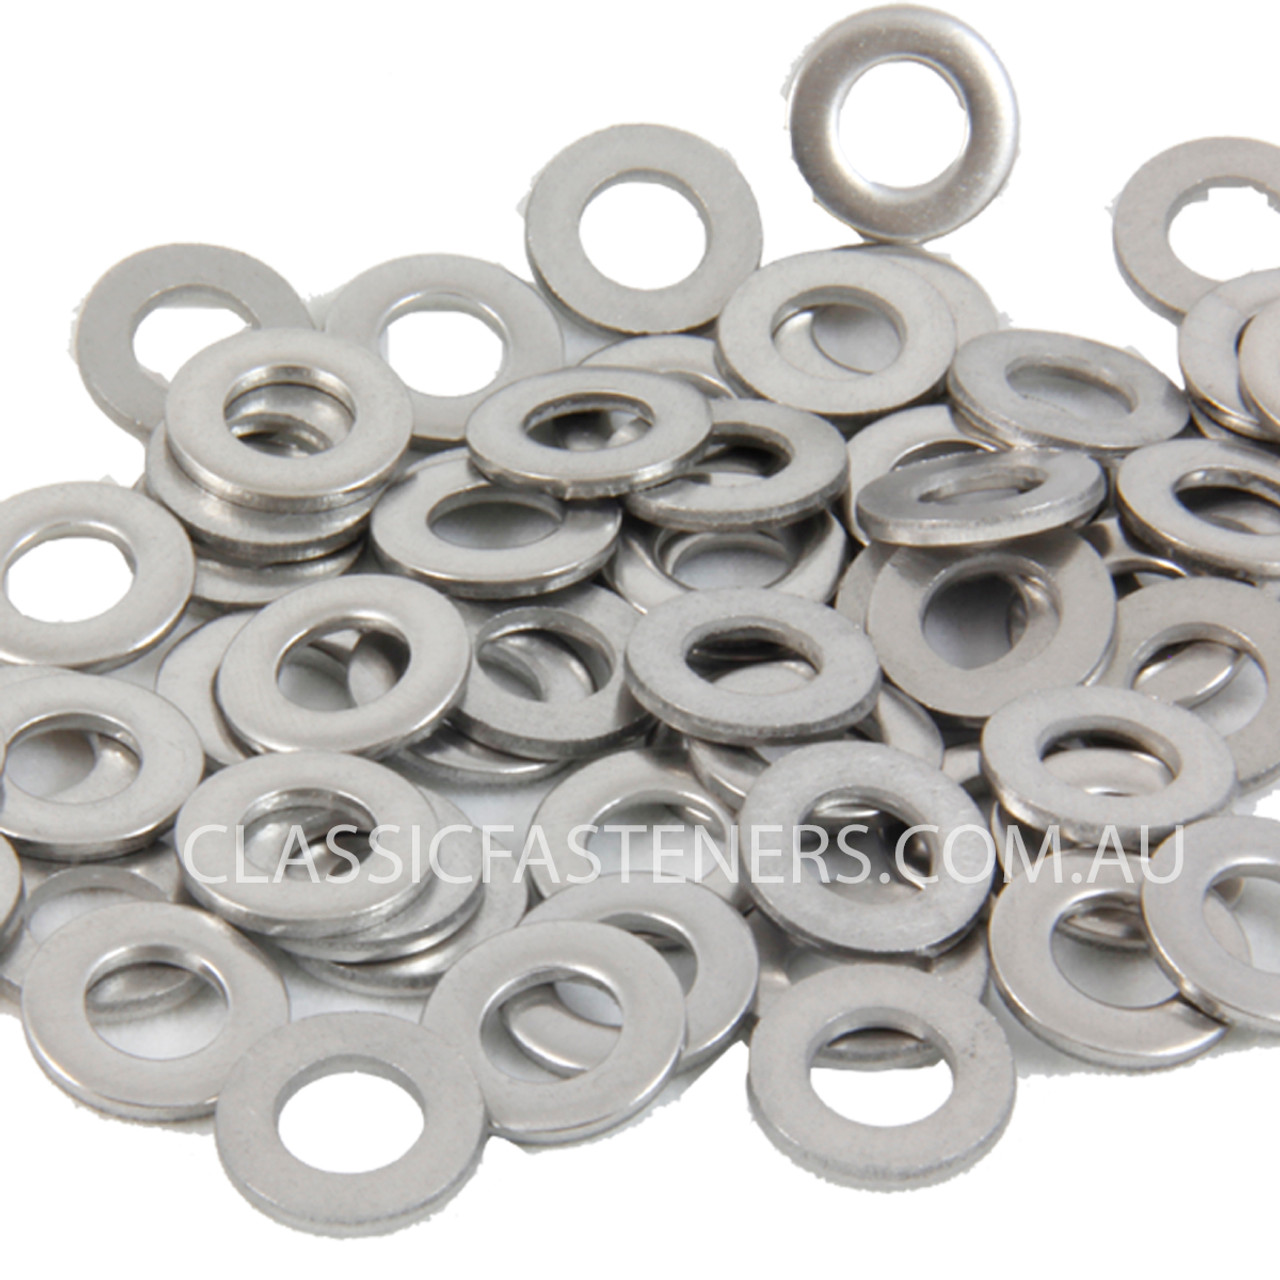 Flat round stainless washer